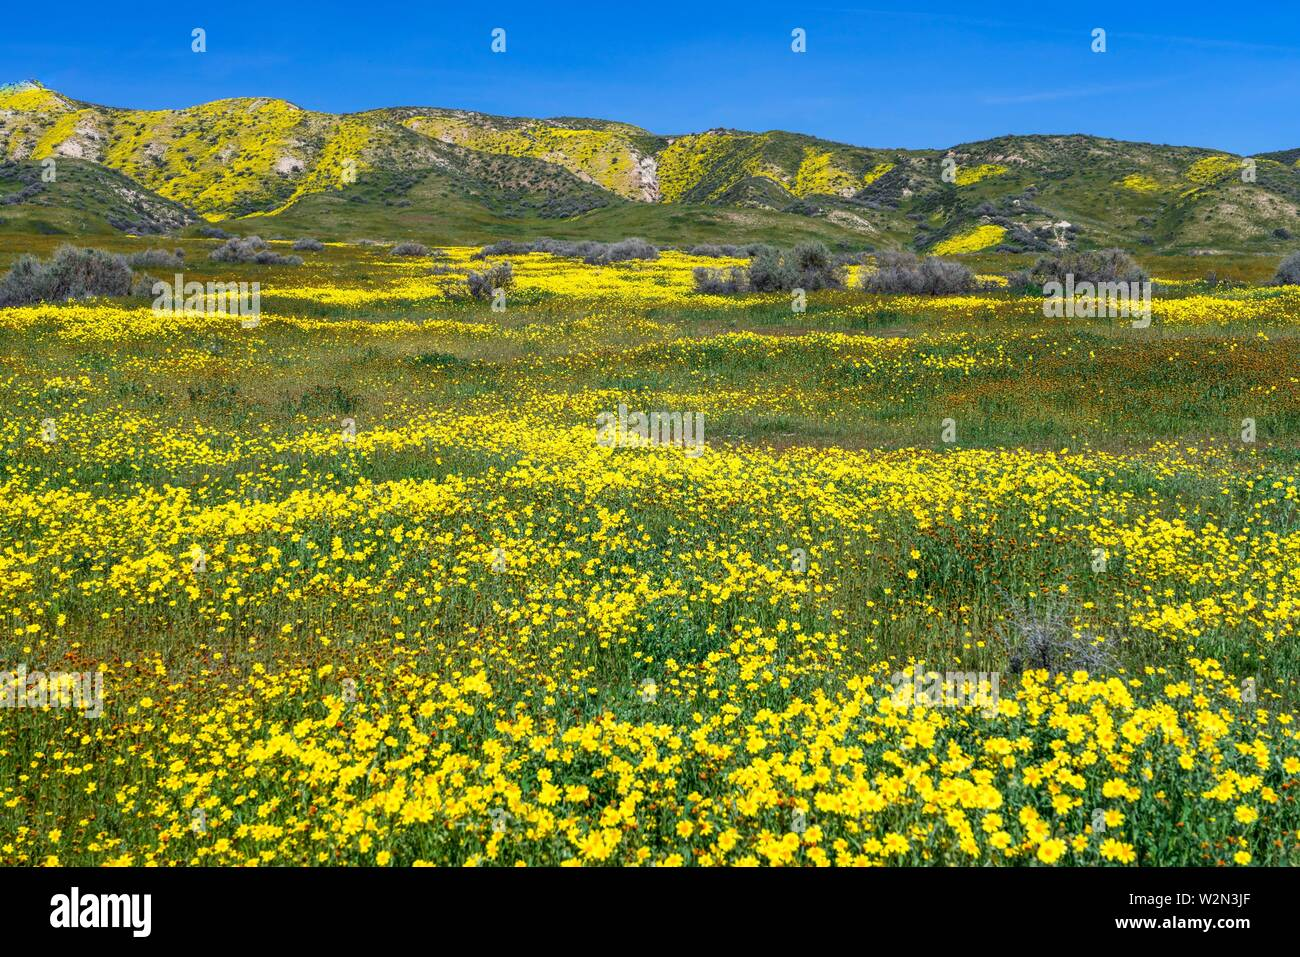 The Carizzo Plain National Monument with wildflowers of the 2019 Superbloom, California, USA. - Stock Image